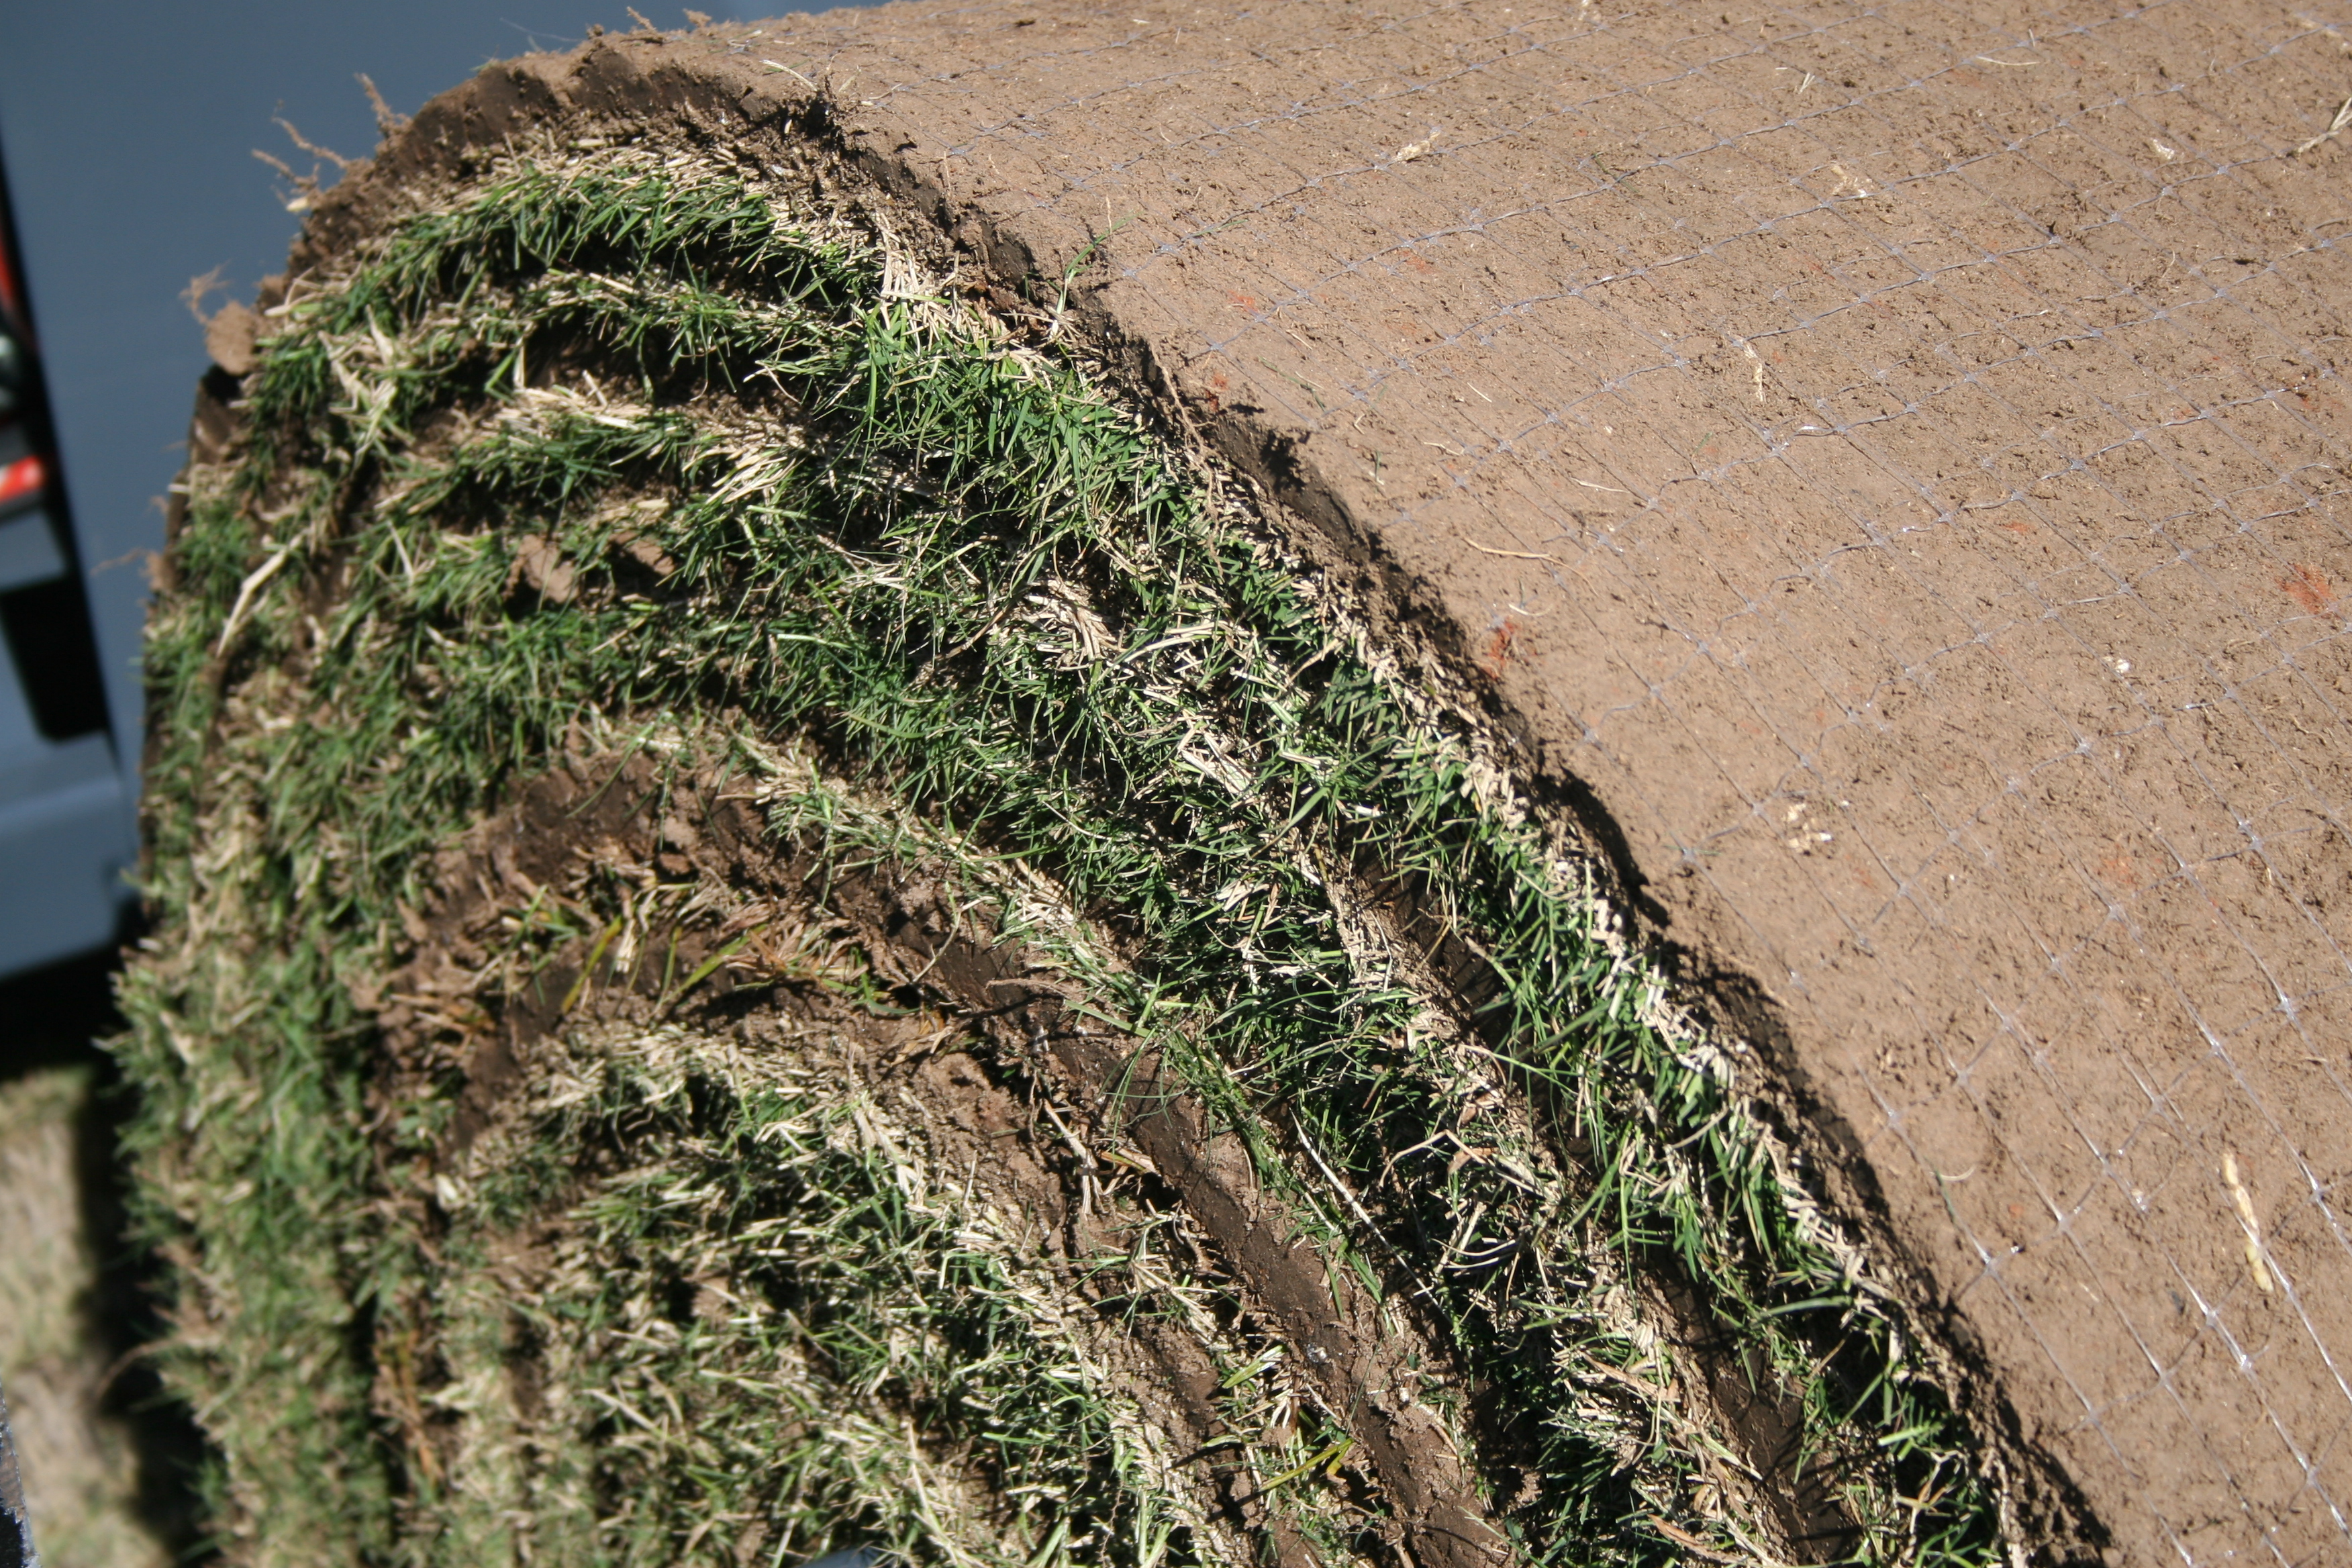 At the annual Georgia Sod and Turf Producers Field Day, industry leaders and university experts will provide updates on turfgrass-related topics.